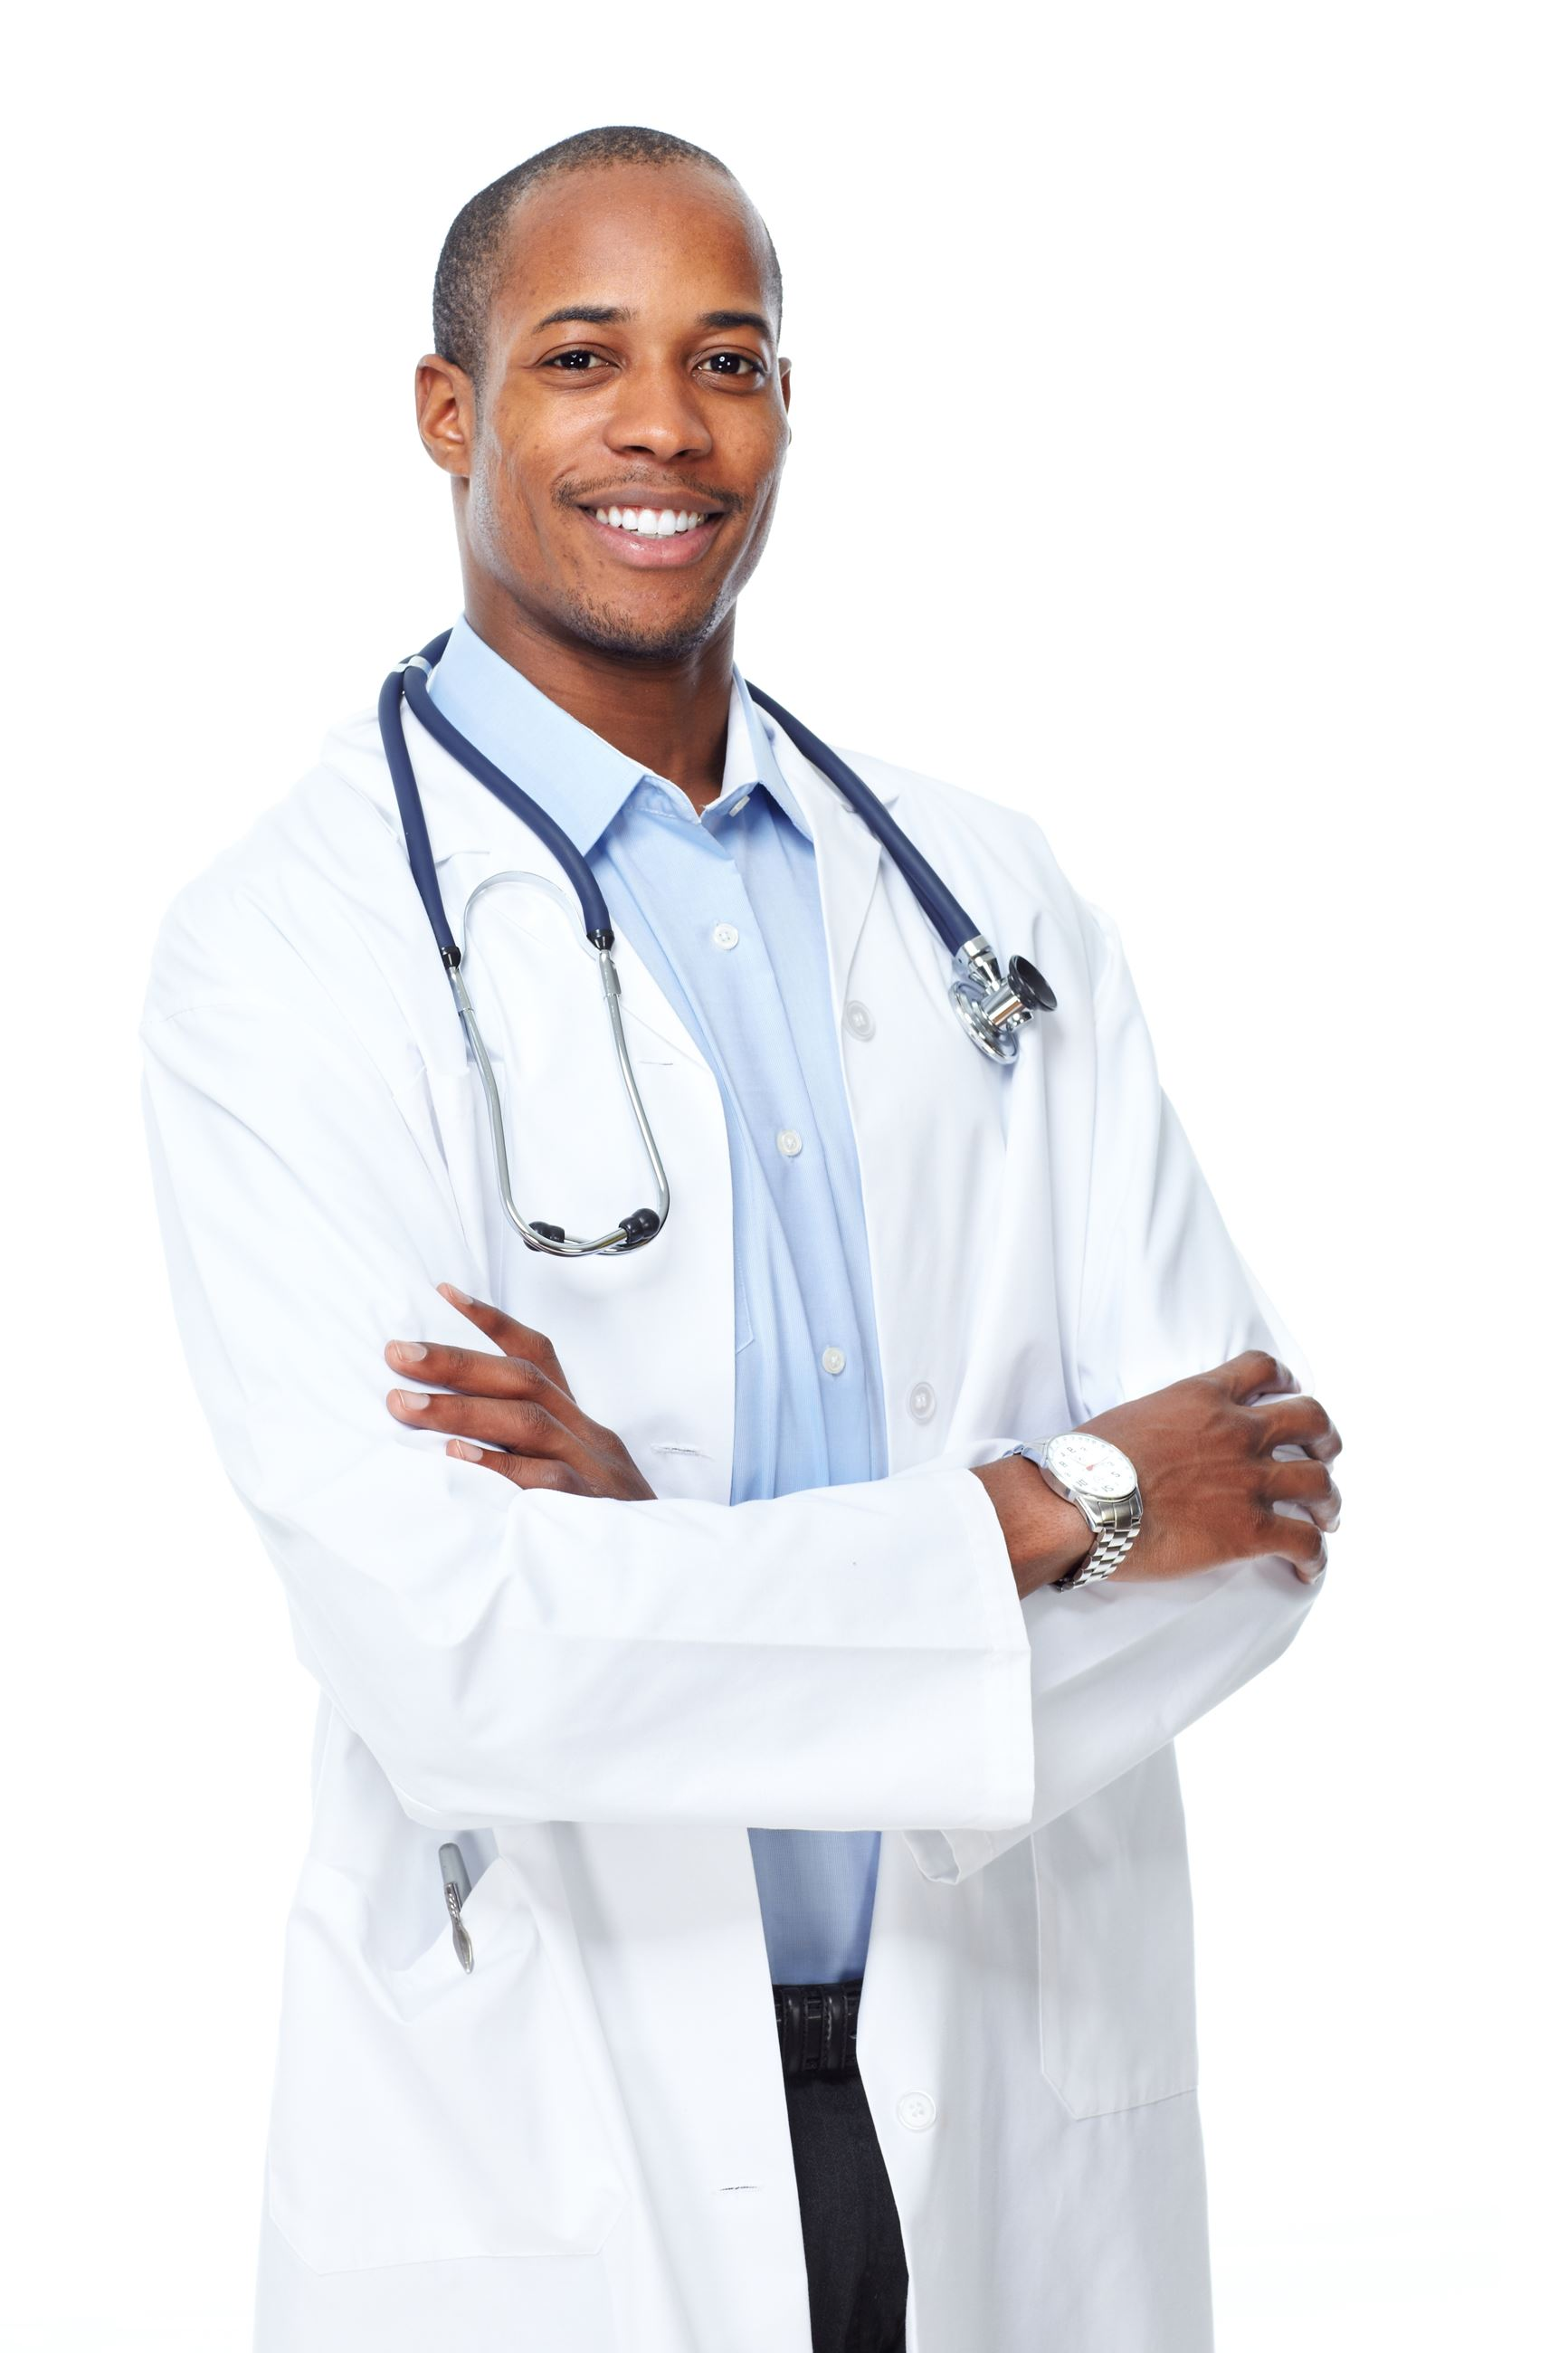 Male doctor wearing white coat with arms crossed, smiling